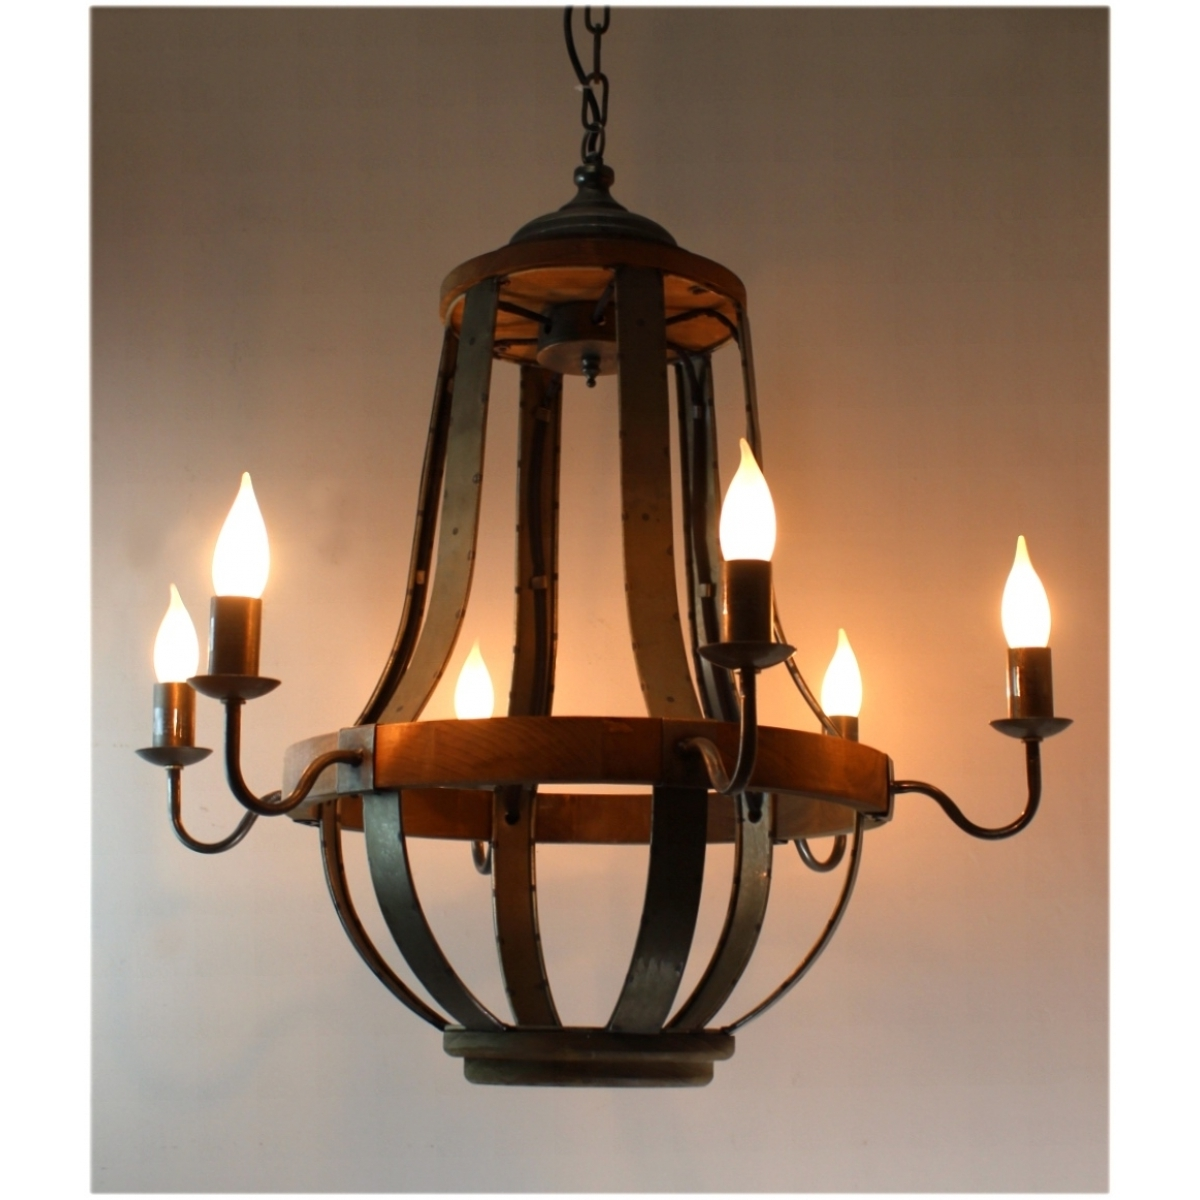 Latest $579 Iron Strap And Aged Wood Chandelier French Country Vintage Intended For Vintage French Chandeliers (View 5 of 15)